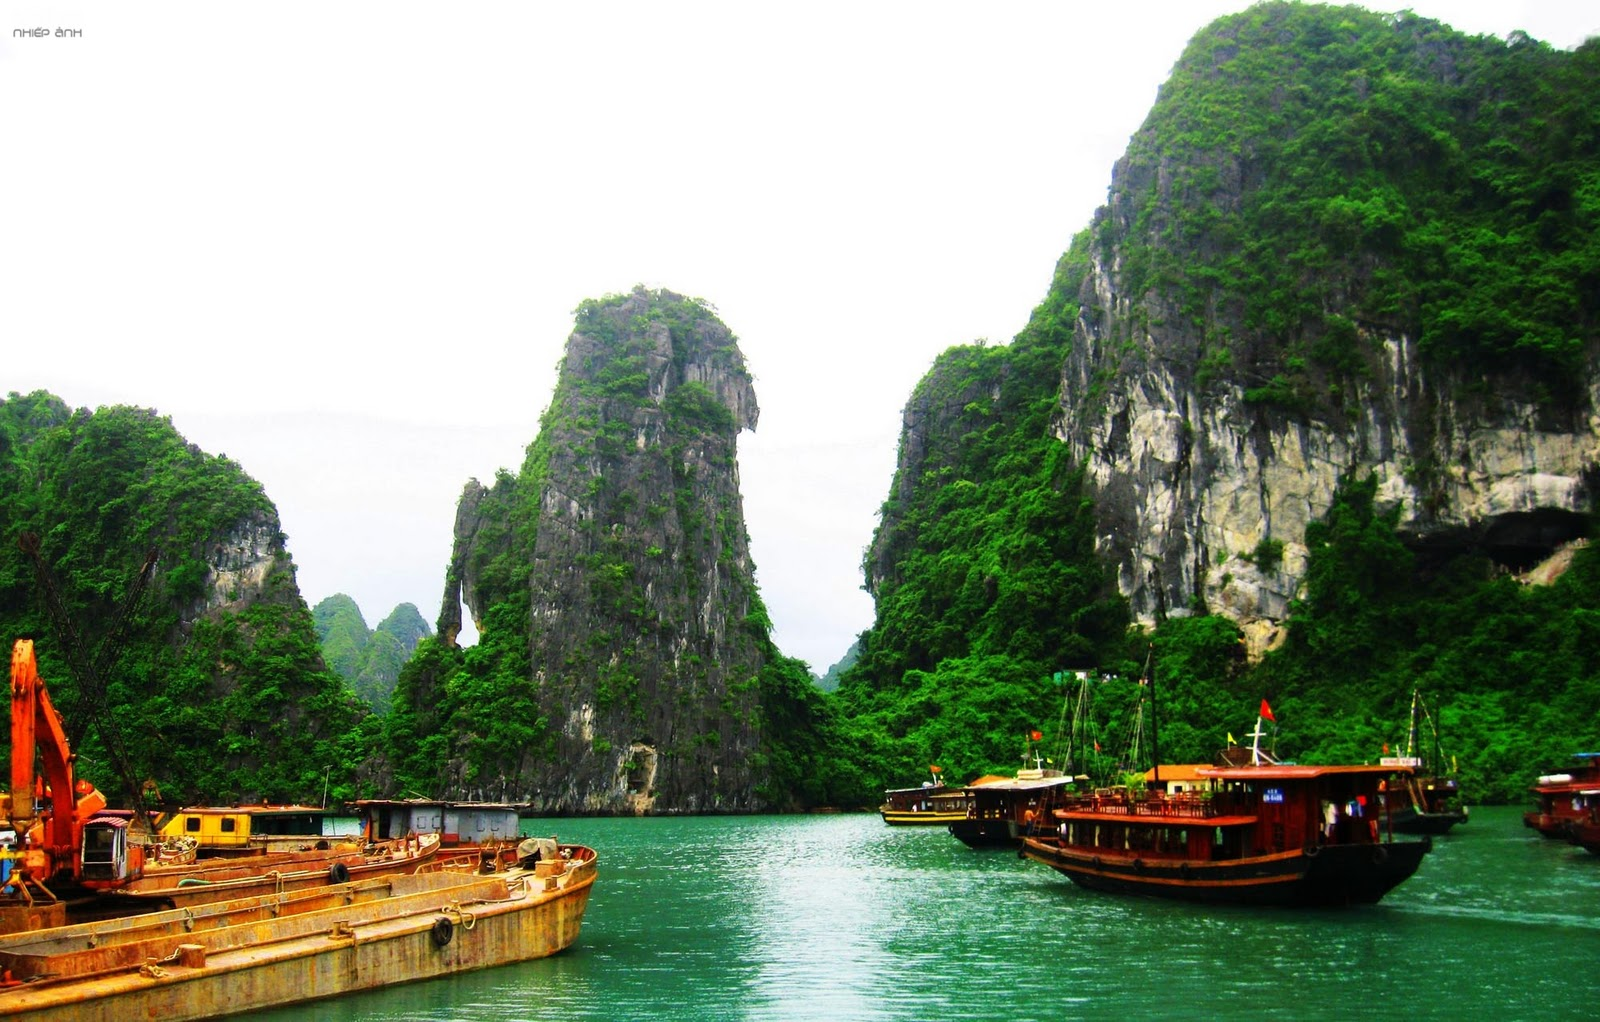 Halong Vietnam  City new picture : ... to Vietnam: The Beauty of Halong Bay a UNESCO heritage site of Vietnam